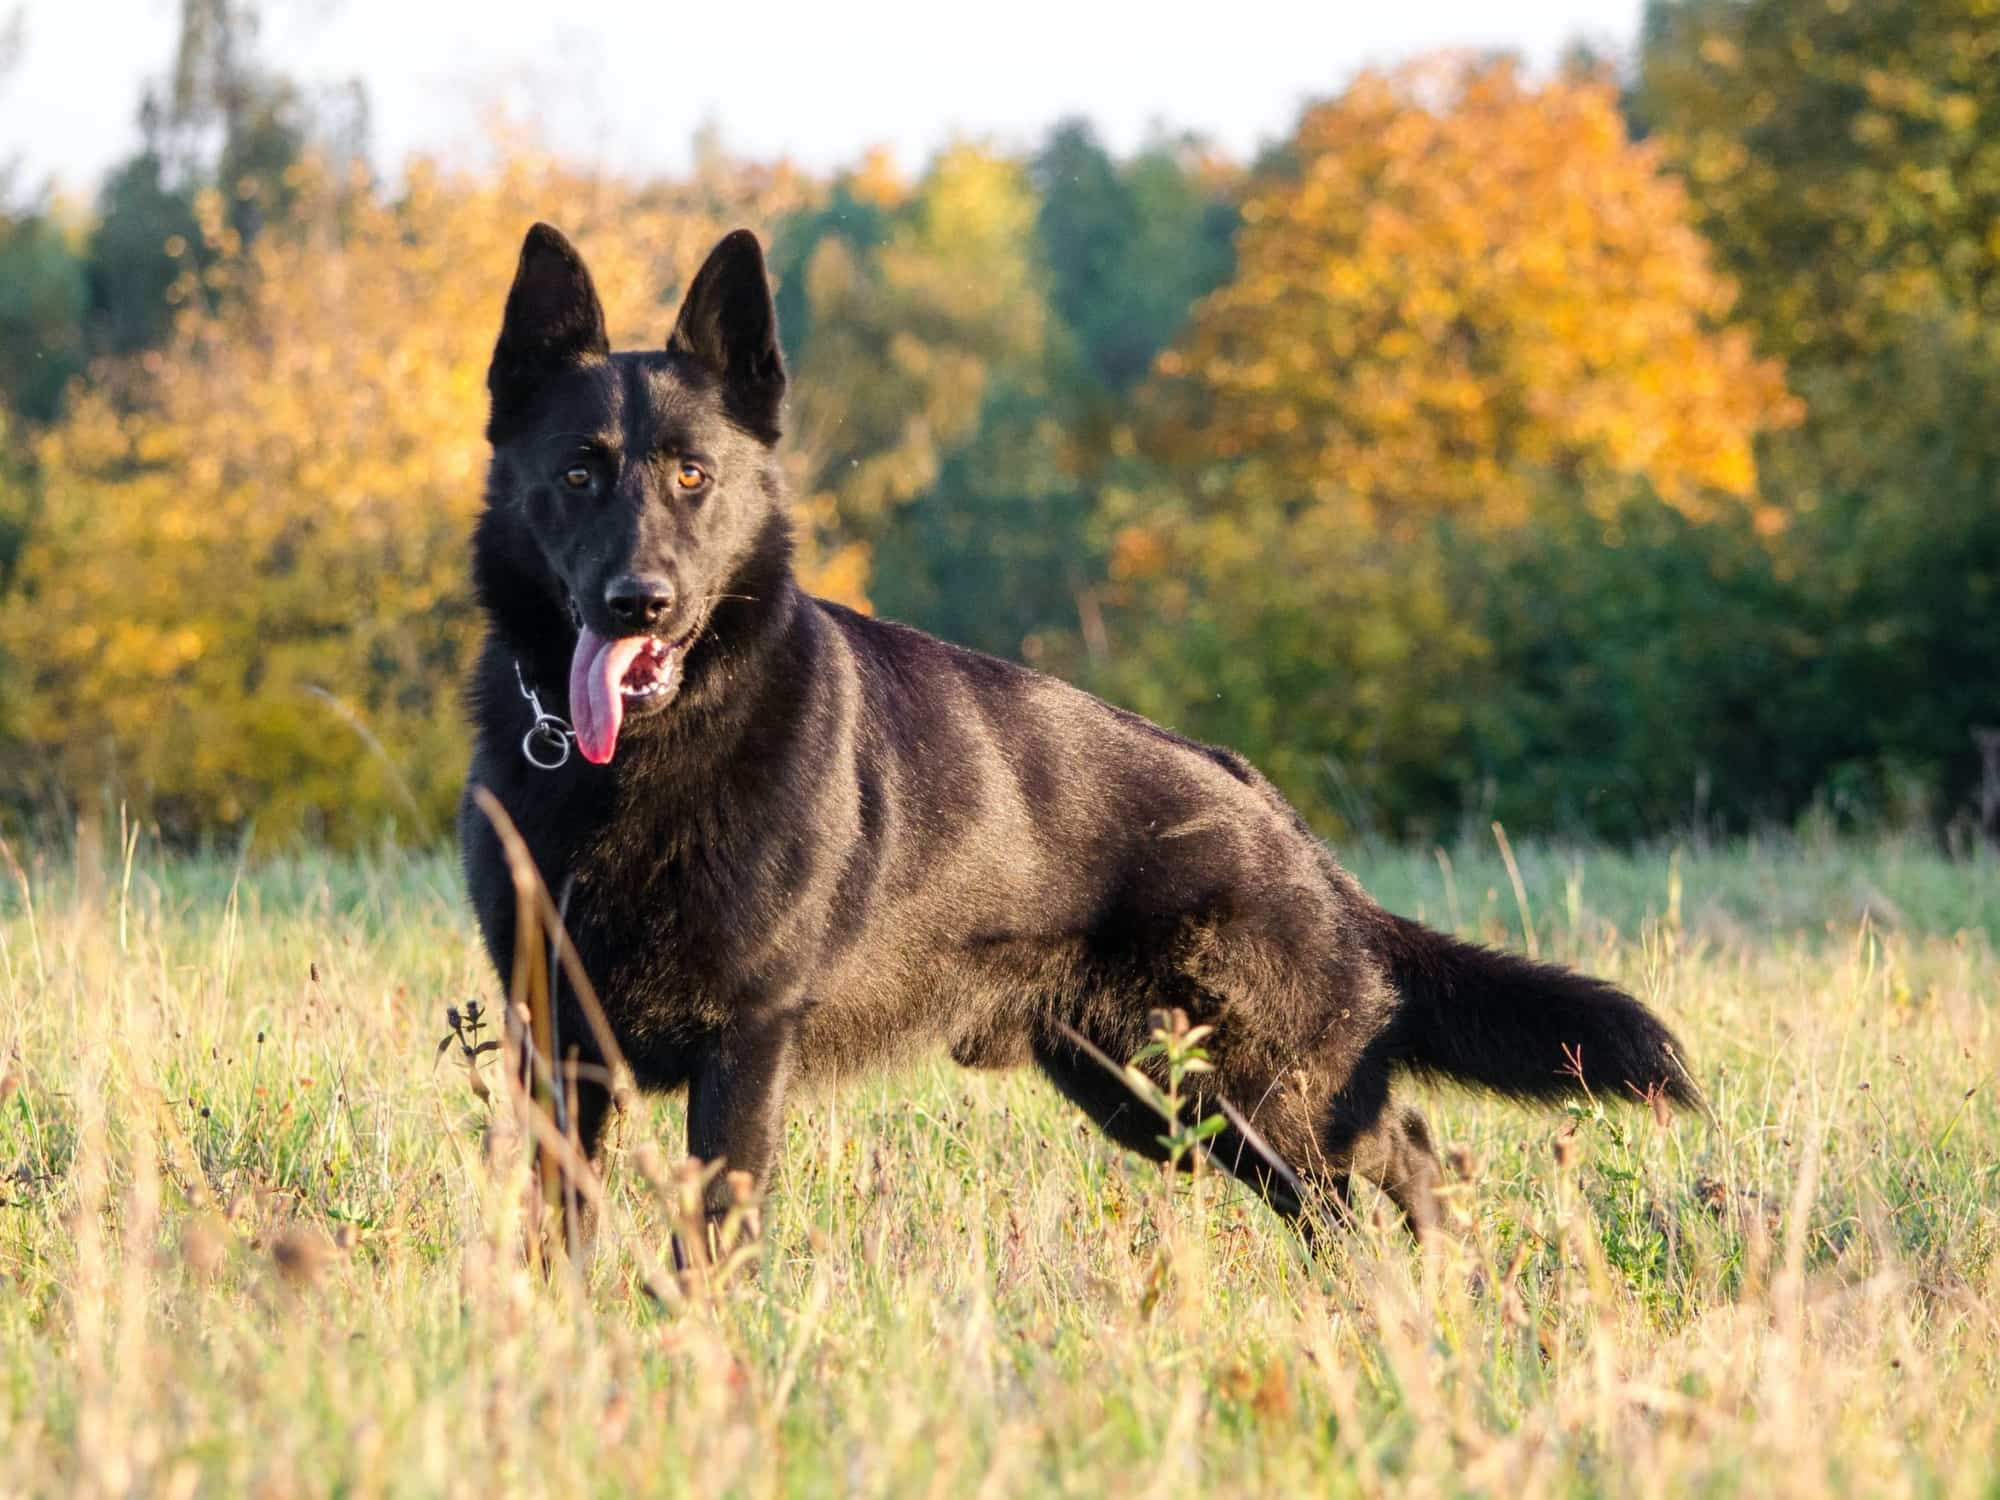 A black dog standing in a field by themself waiting for their pet parent to play with them.